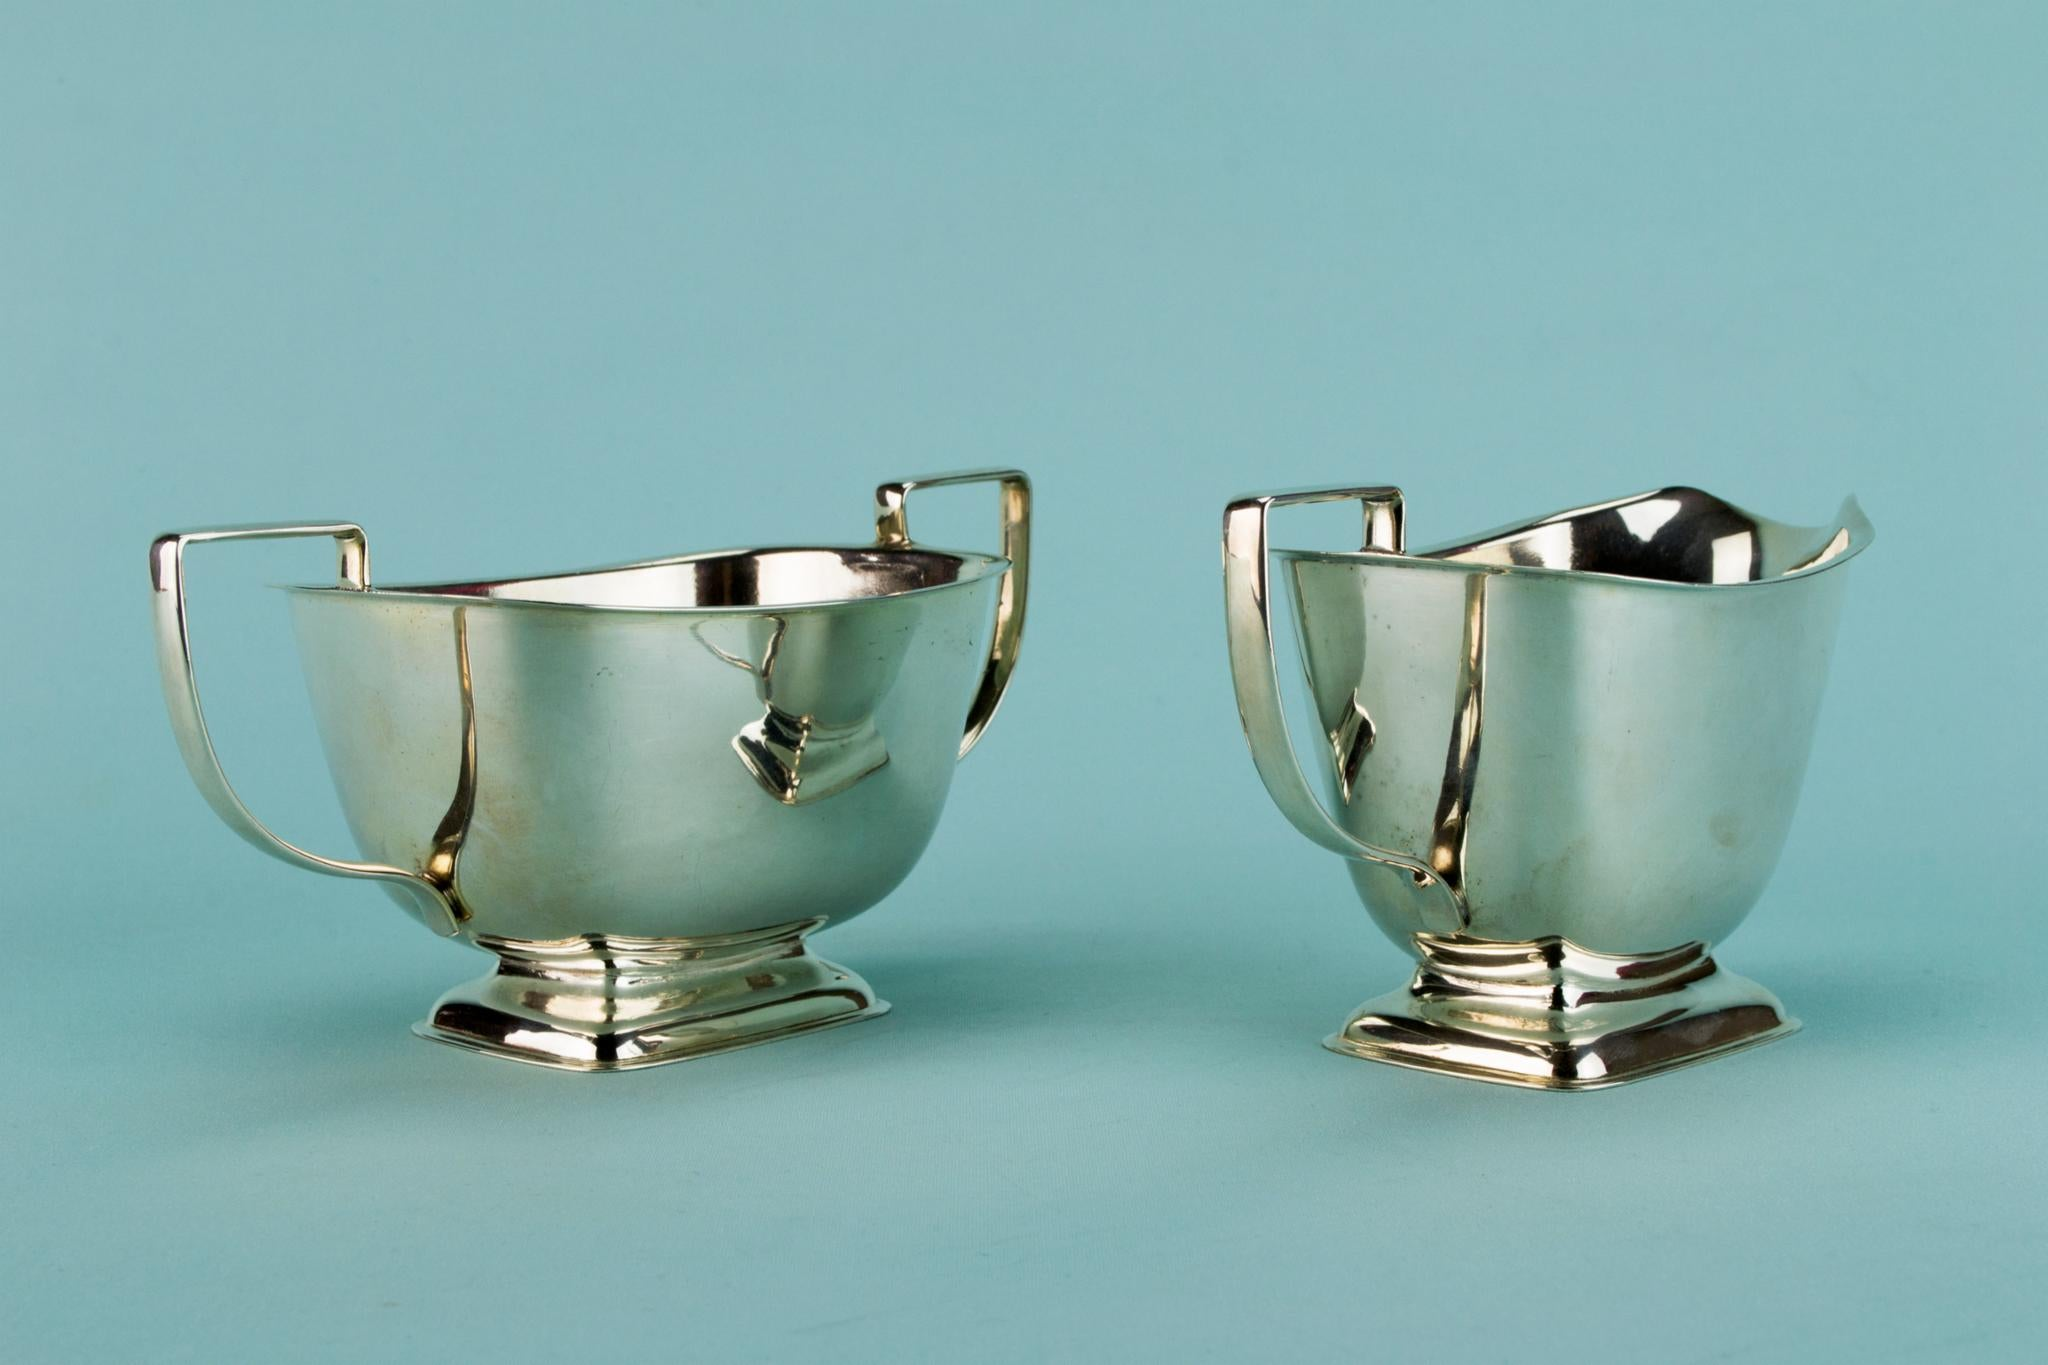 Art Deco silver plated tea set, English 1930s